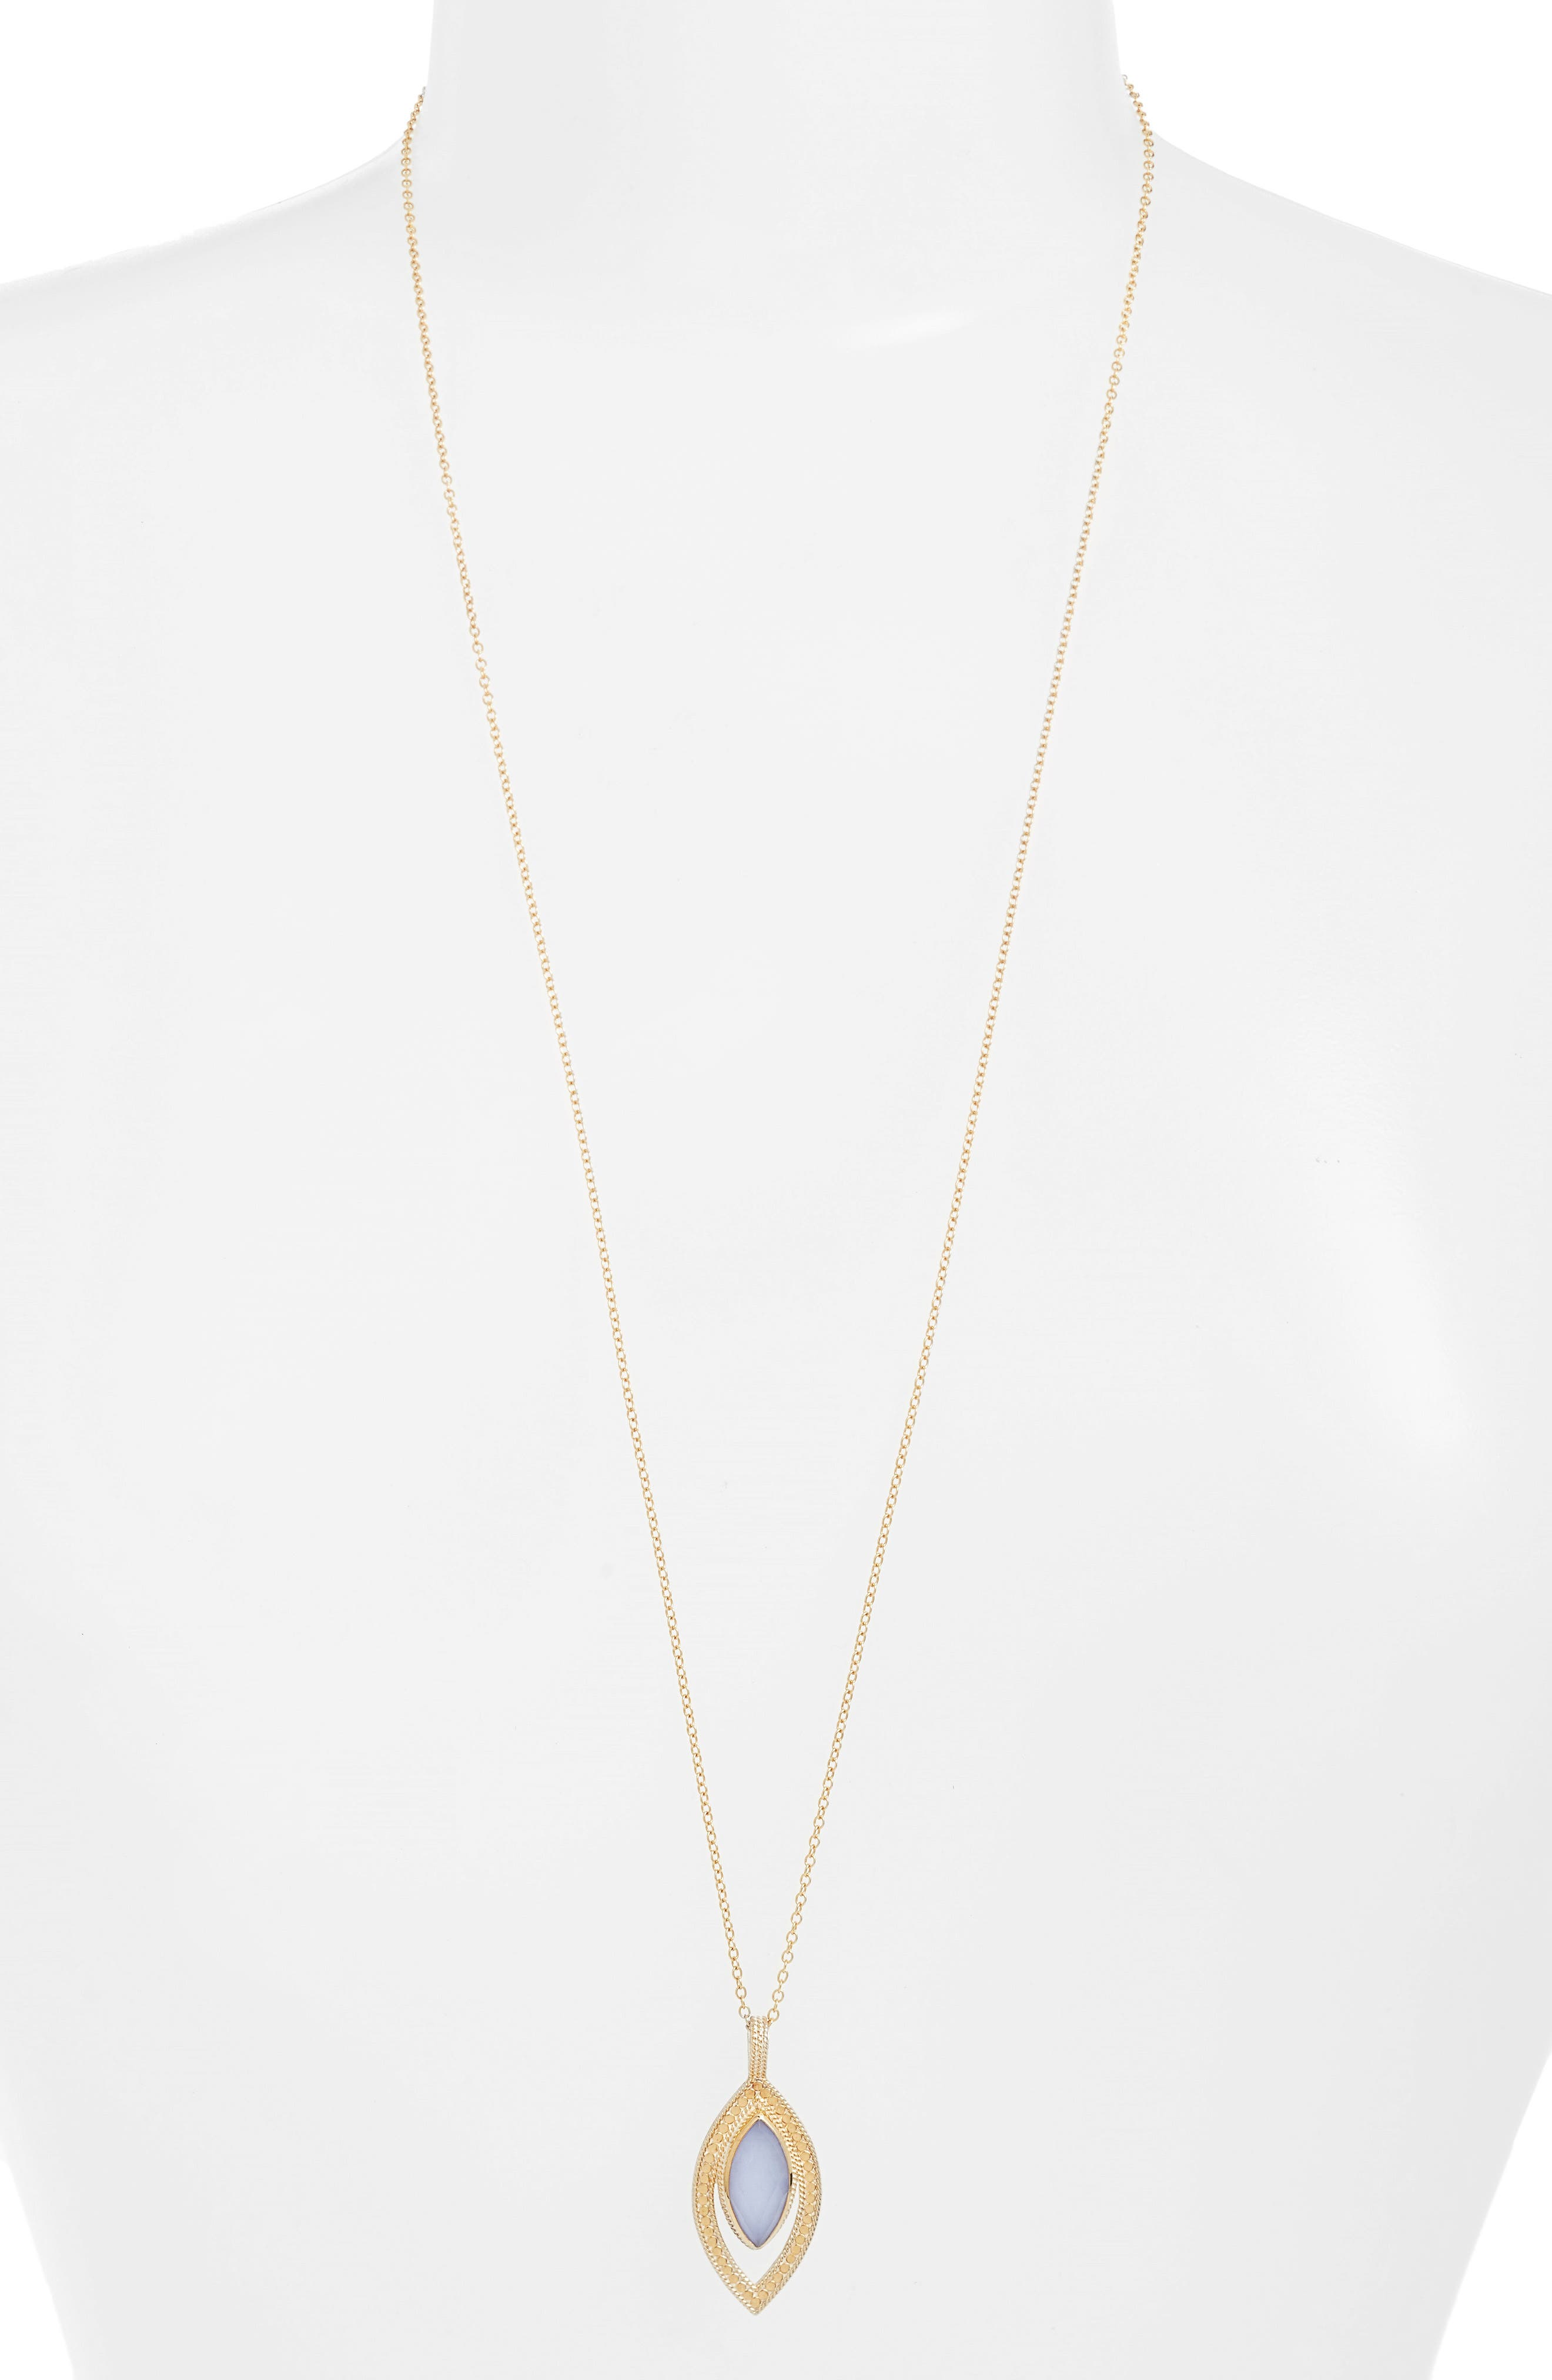 Main Image - Anna Beck Chalcedony Doublet Pendant Necklace